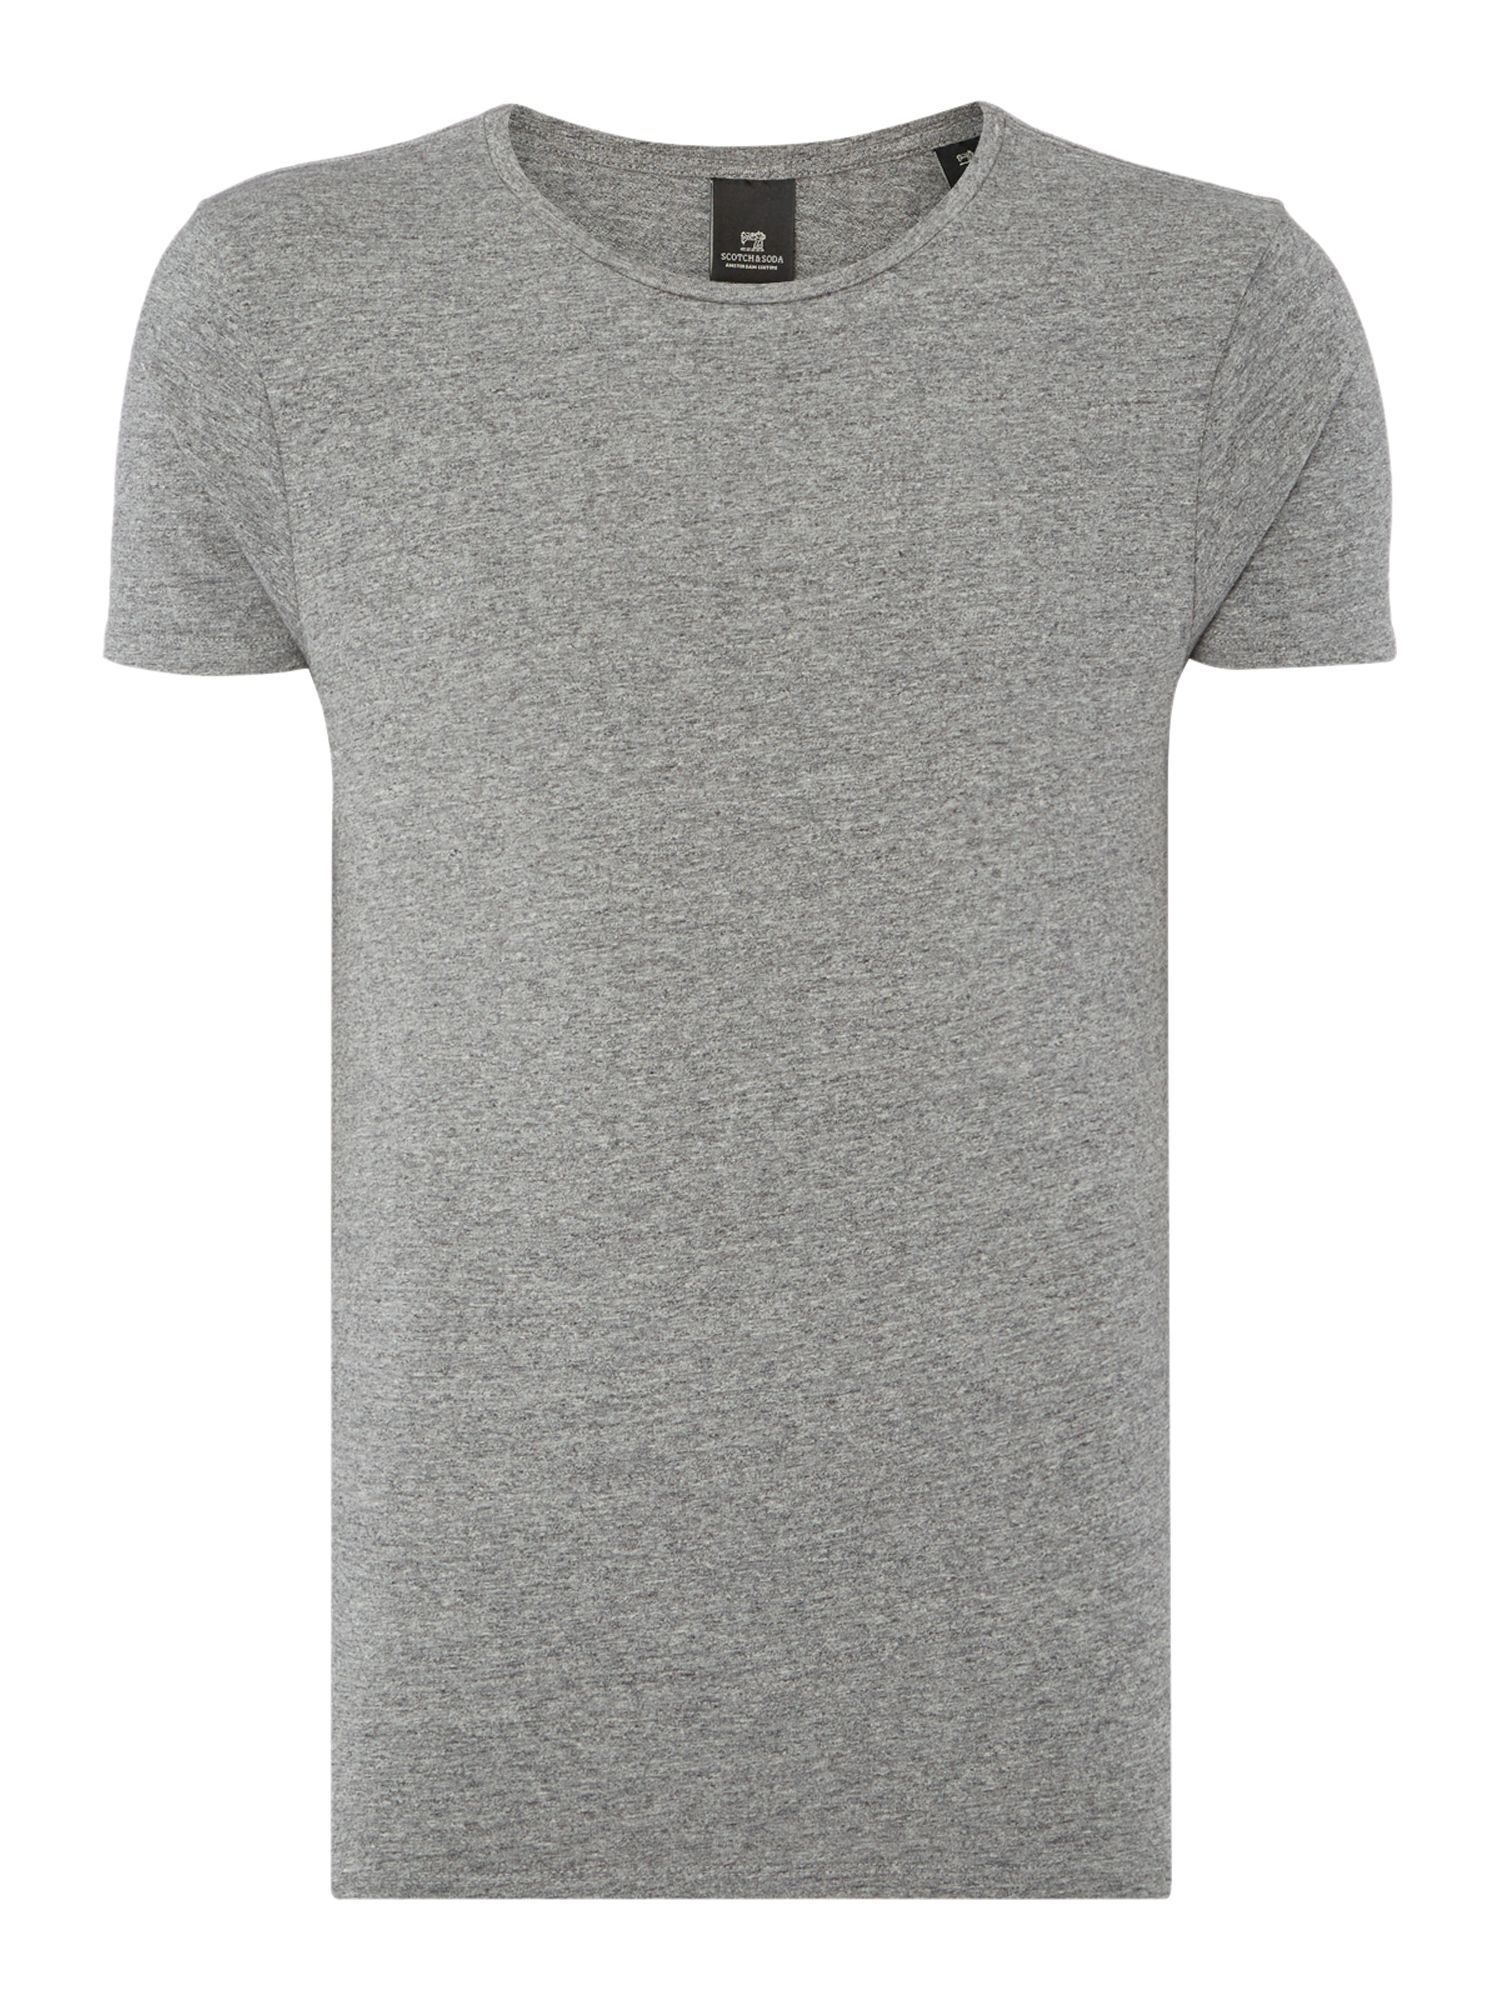 Men's Scotch & Soda Classic crewneck tee, Charcoal